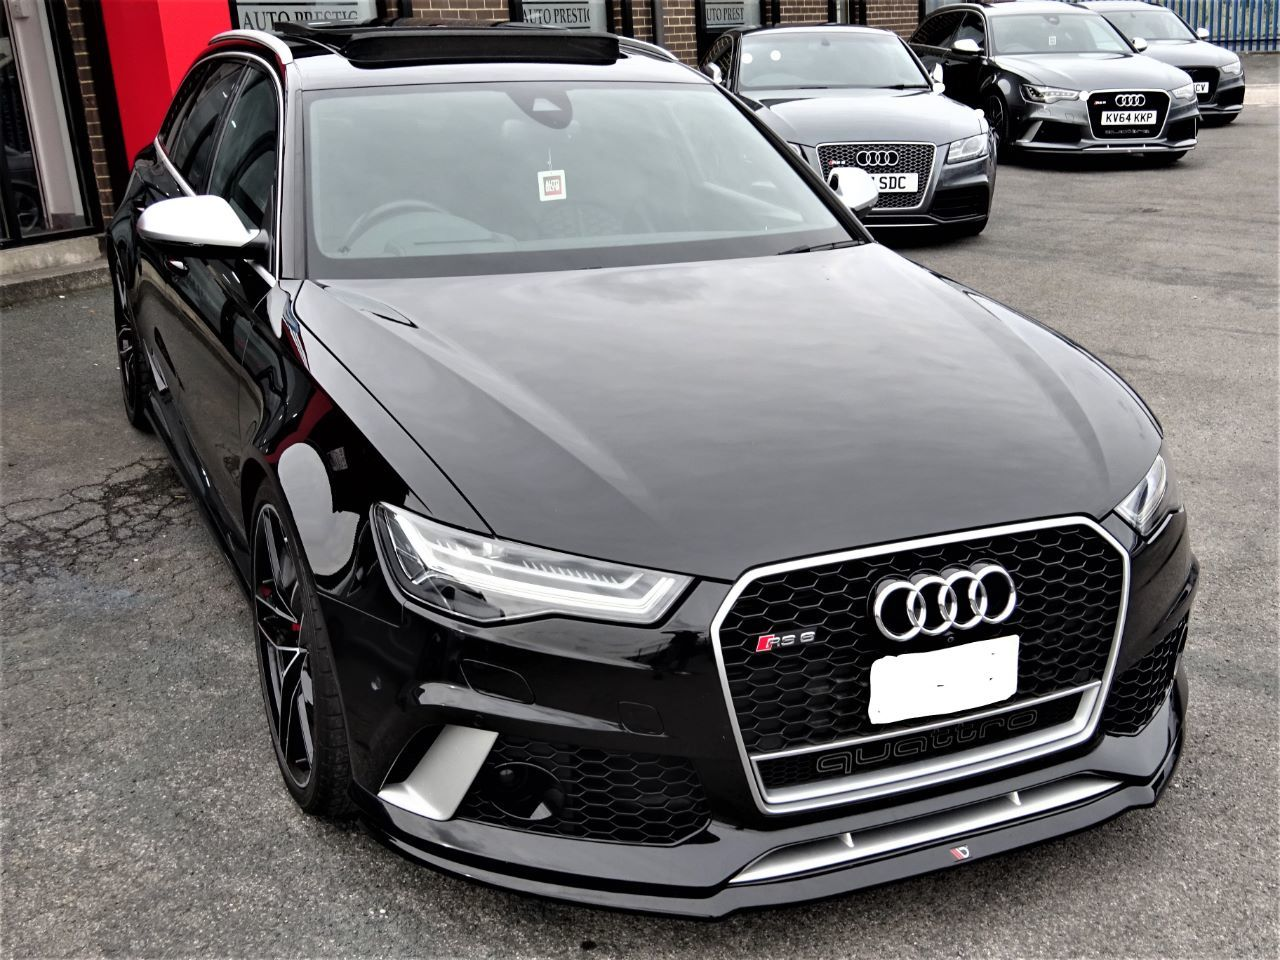 Used Audi Cars Bradford Second Hand Cars West Yorkshire Autoprestige - Audi car second hand